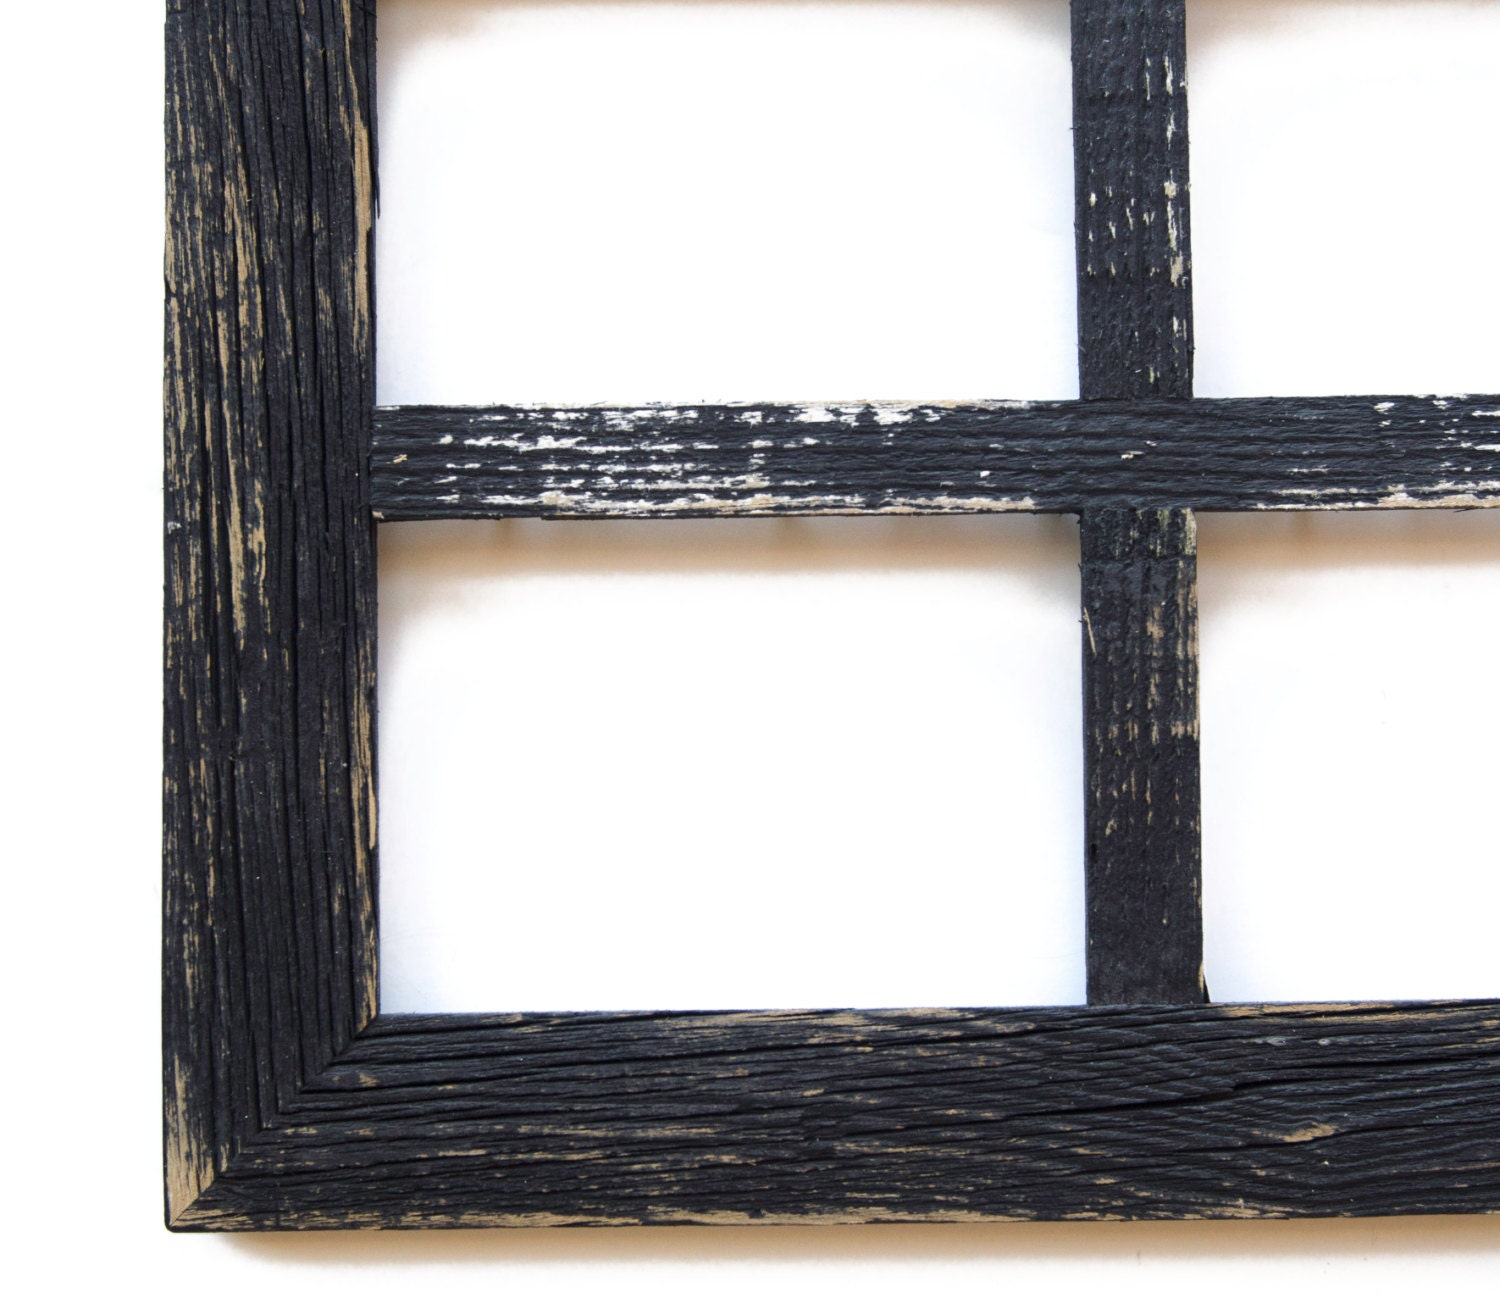 2 4 hole 8x10 barn window collage picture frame black distressed frame - Window Collage Frame